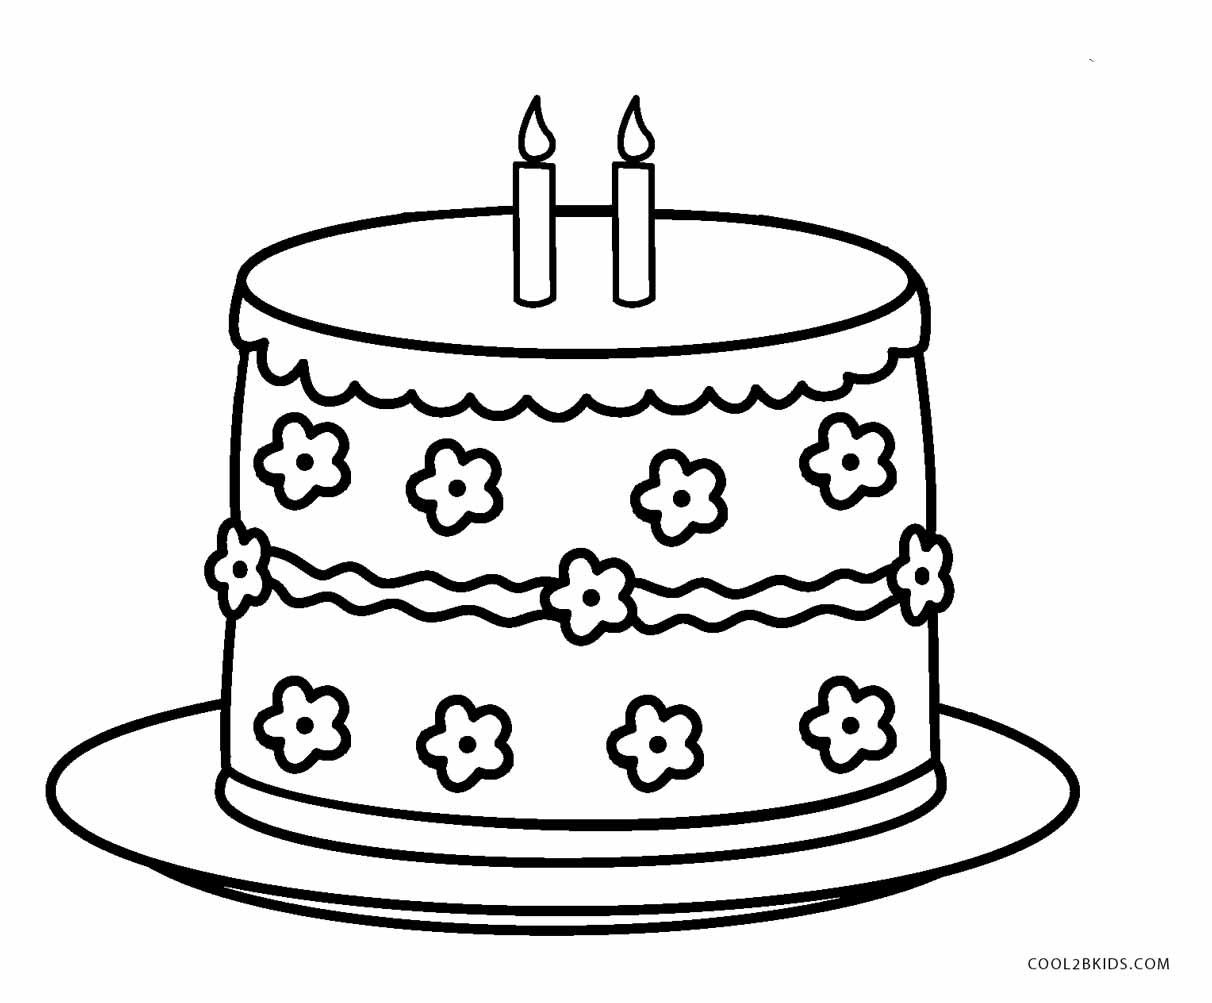 Cake Images Print : Free Printable Birthday Cake Coloring Pages For Kids ...